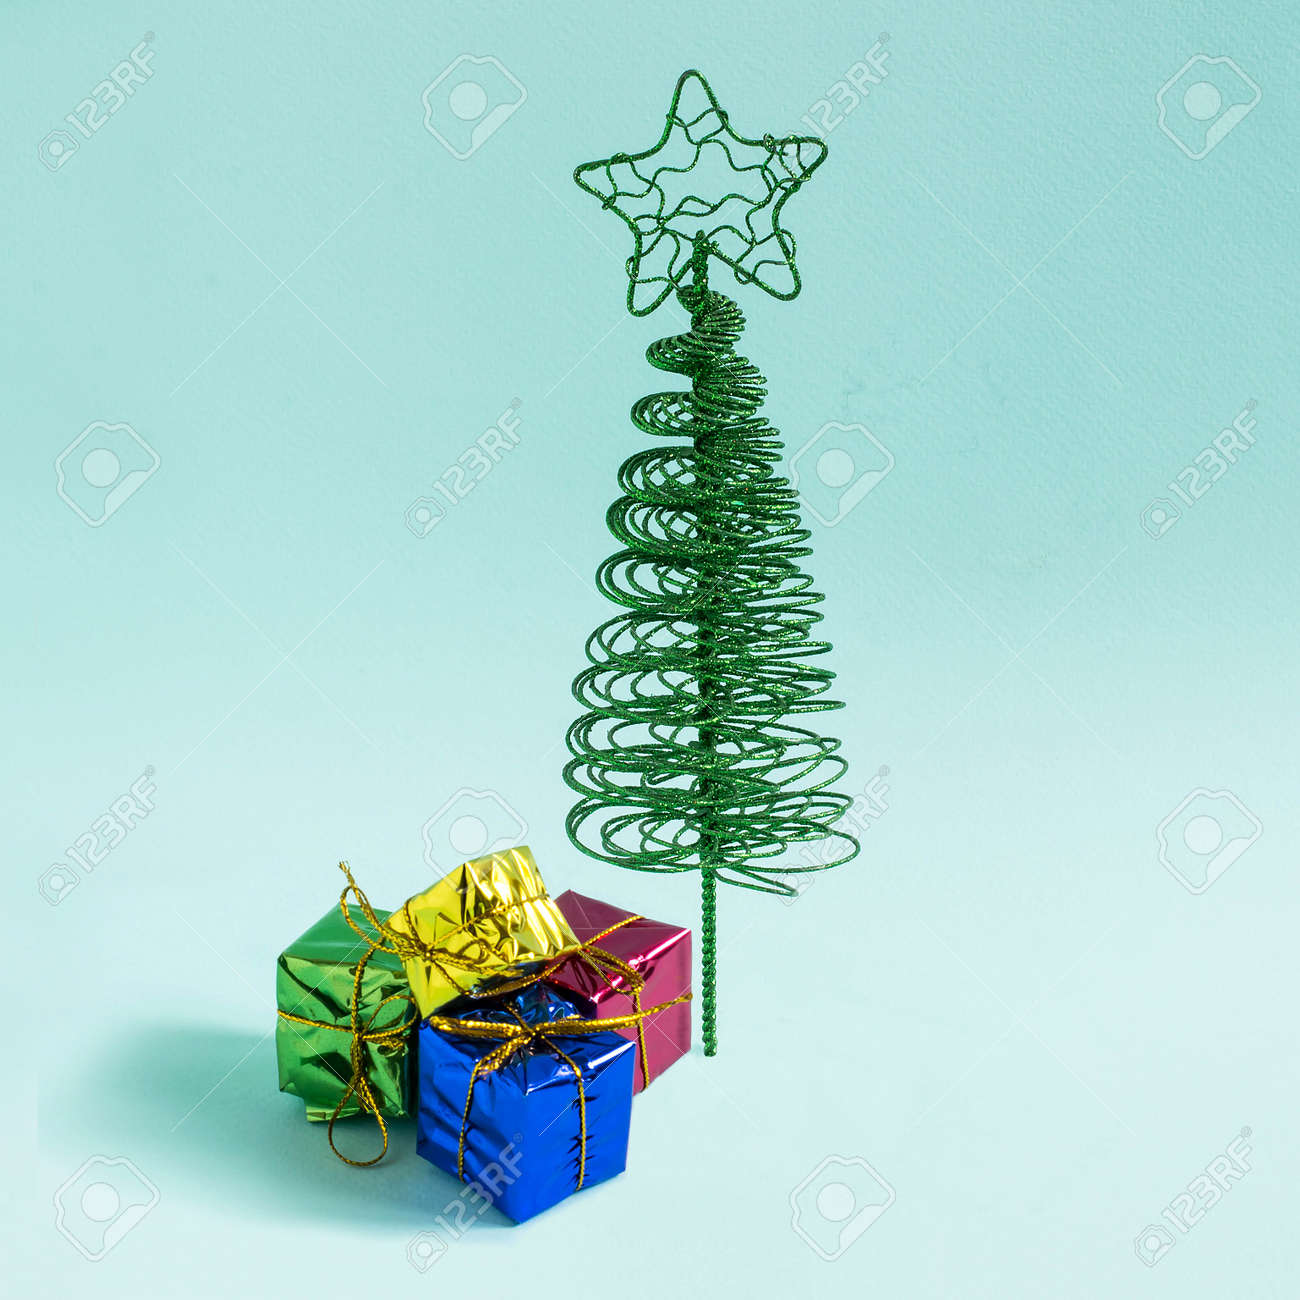 Small Elegant Christmas Tree Made Of Wire And Gifts On Gradient Stock Photo Picture And Royalty Free Image Image 103028254